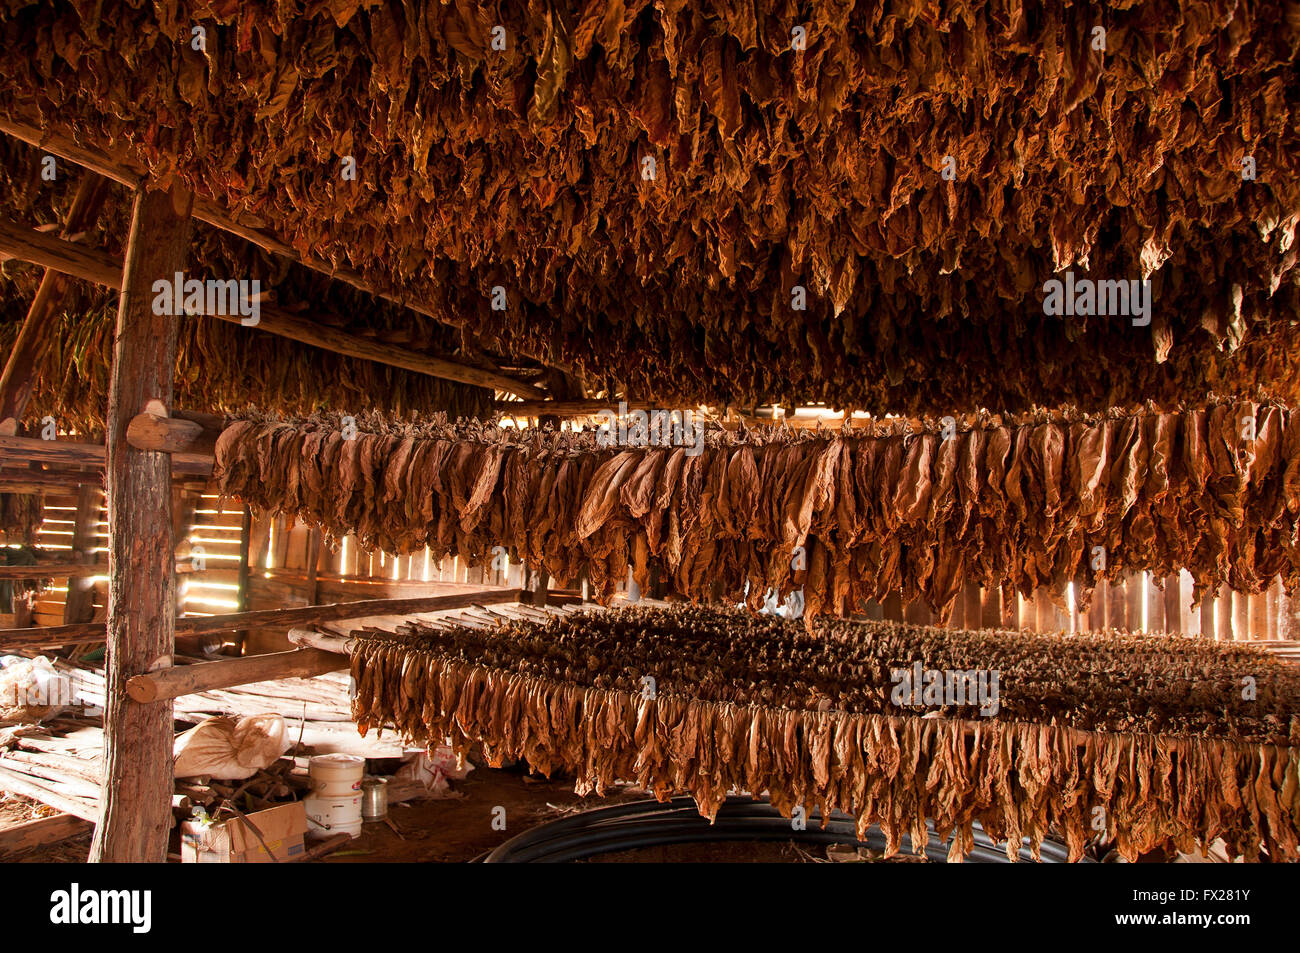 Barn for drying of tobacco, Vinales, Cuba - Stock Image